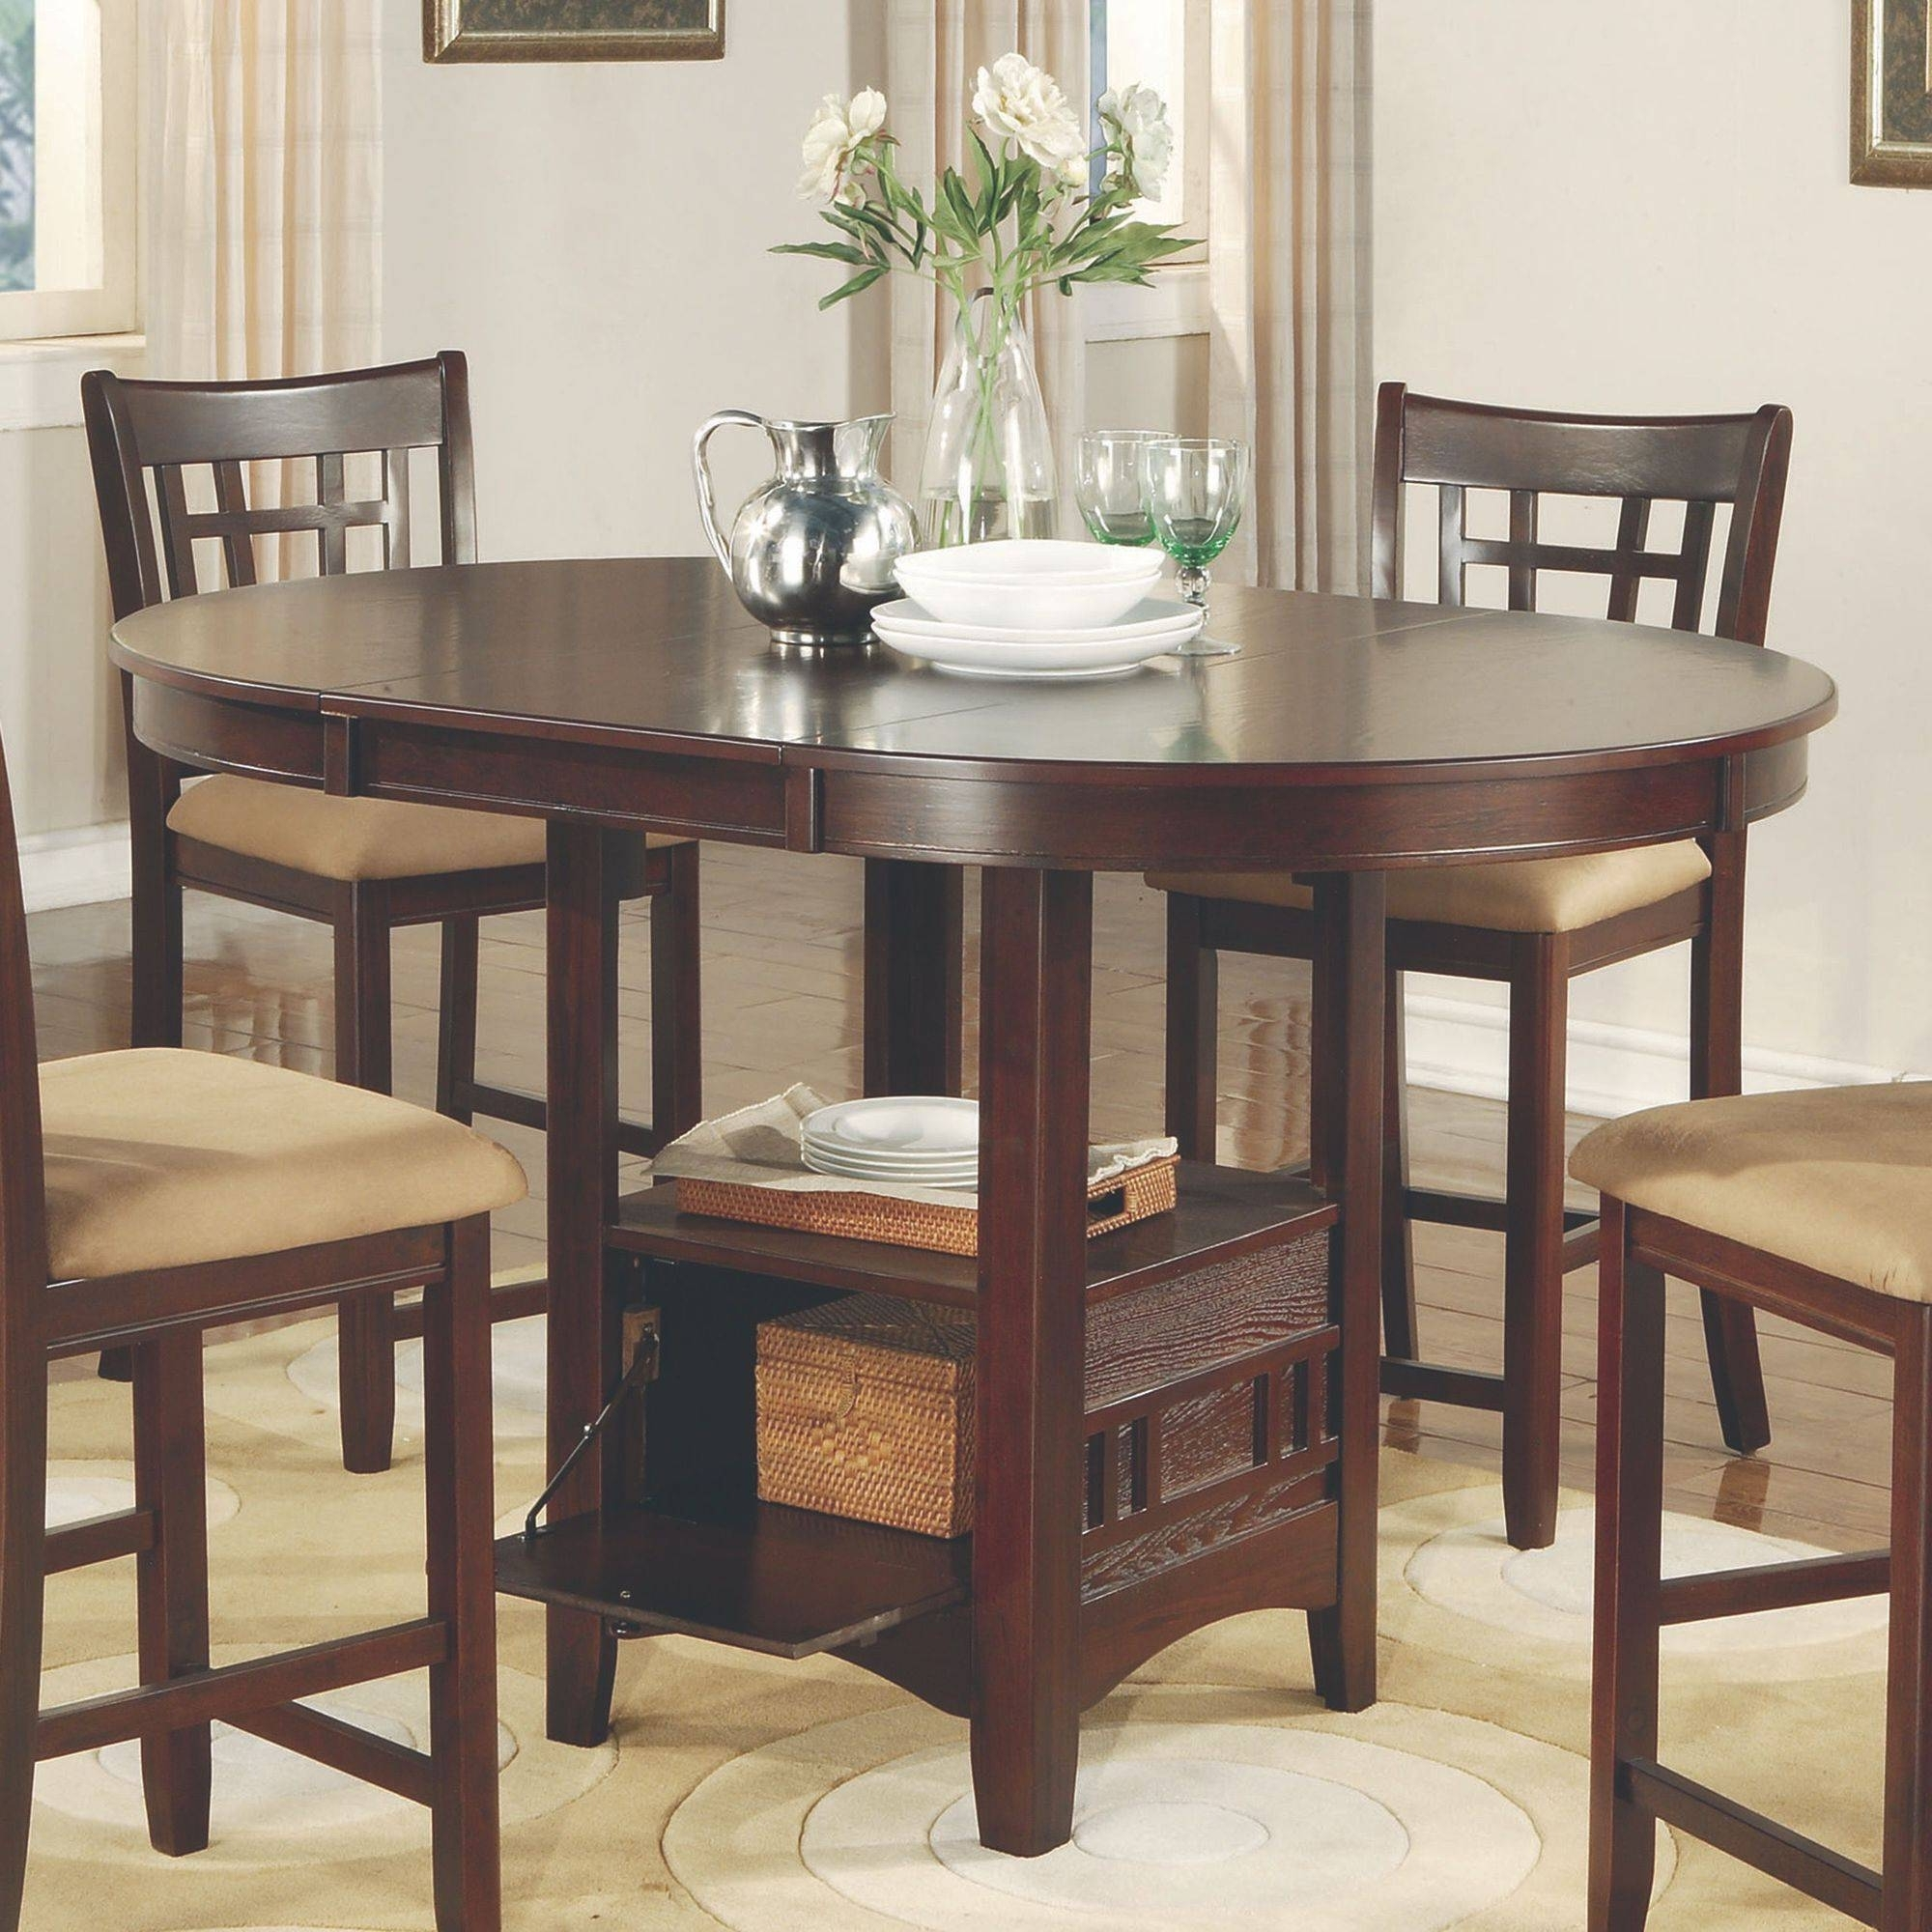 Extendable Round Dining Tables Sets Throughout Famous Extendable Counter For Charming Pedestal Glass And Room Round Set (View 18 of 25)